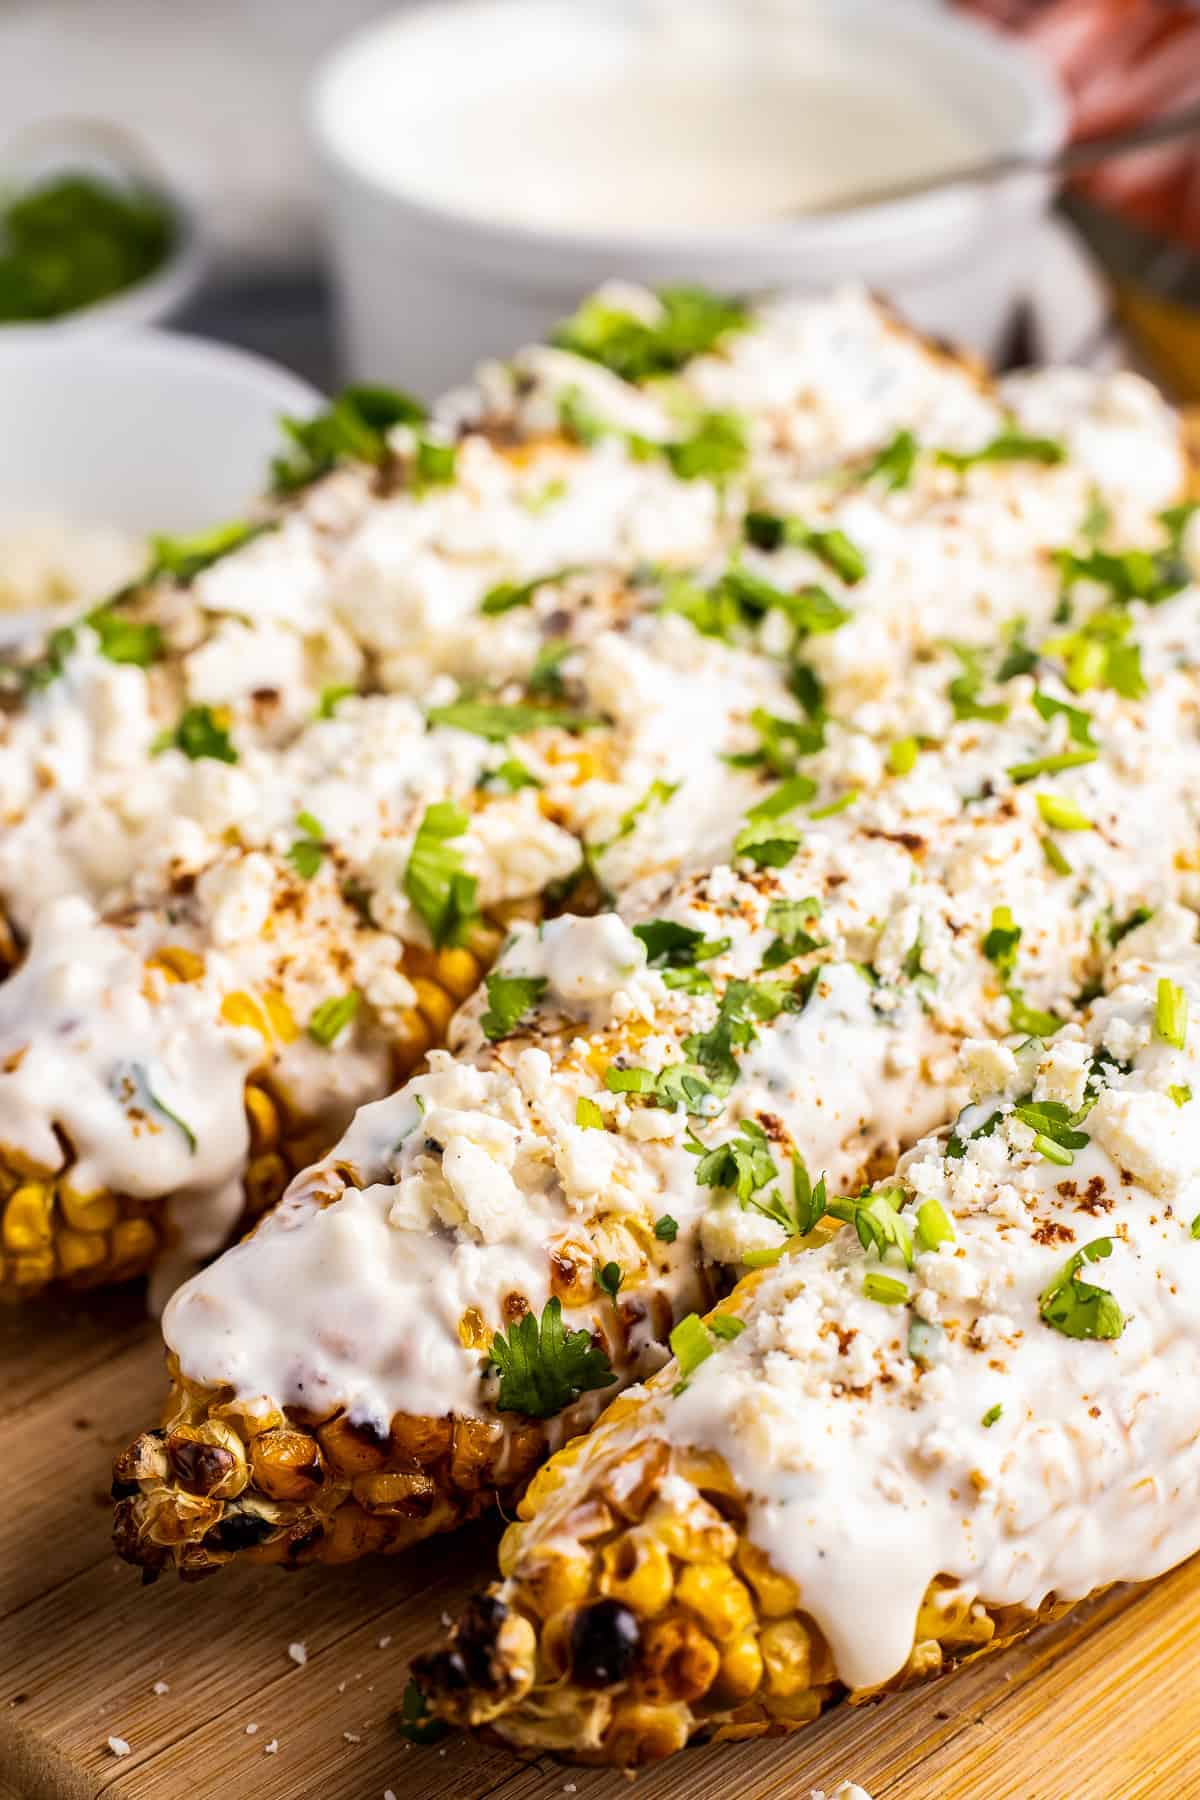 Mexican Street Corn on a wooden cutting board